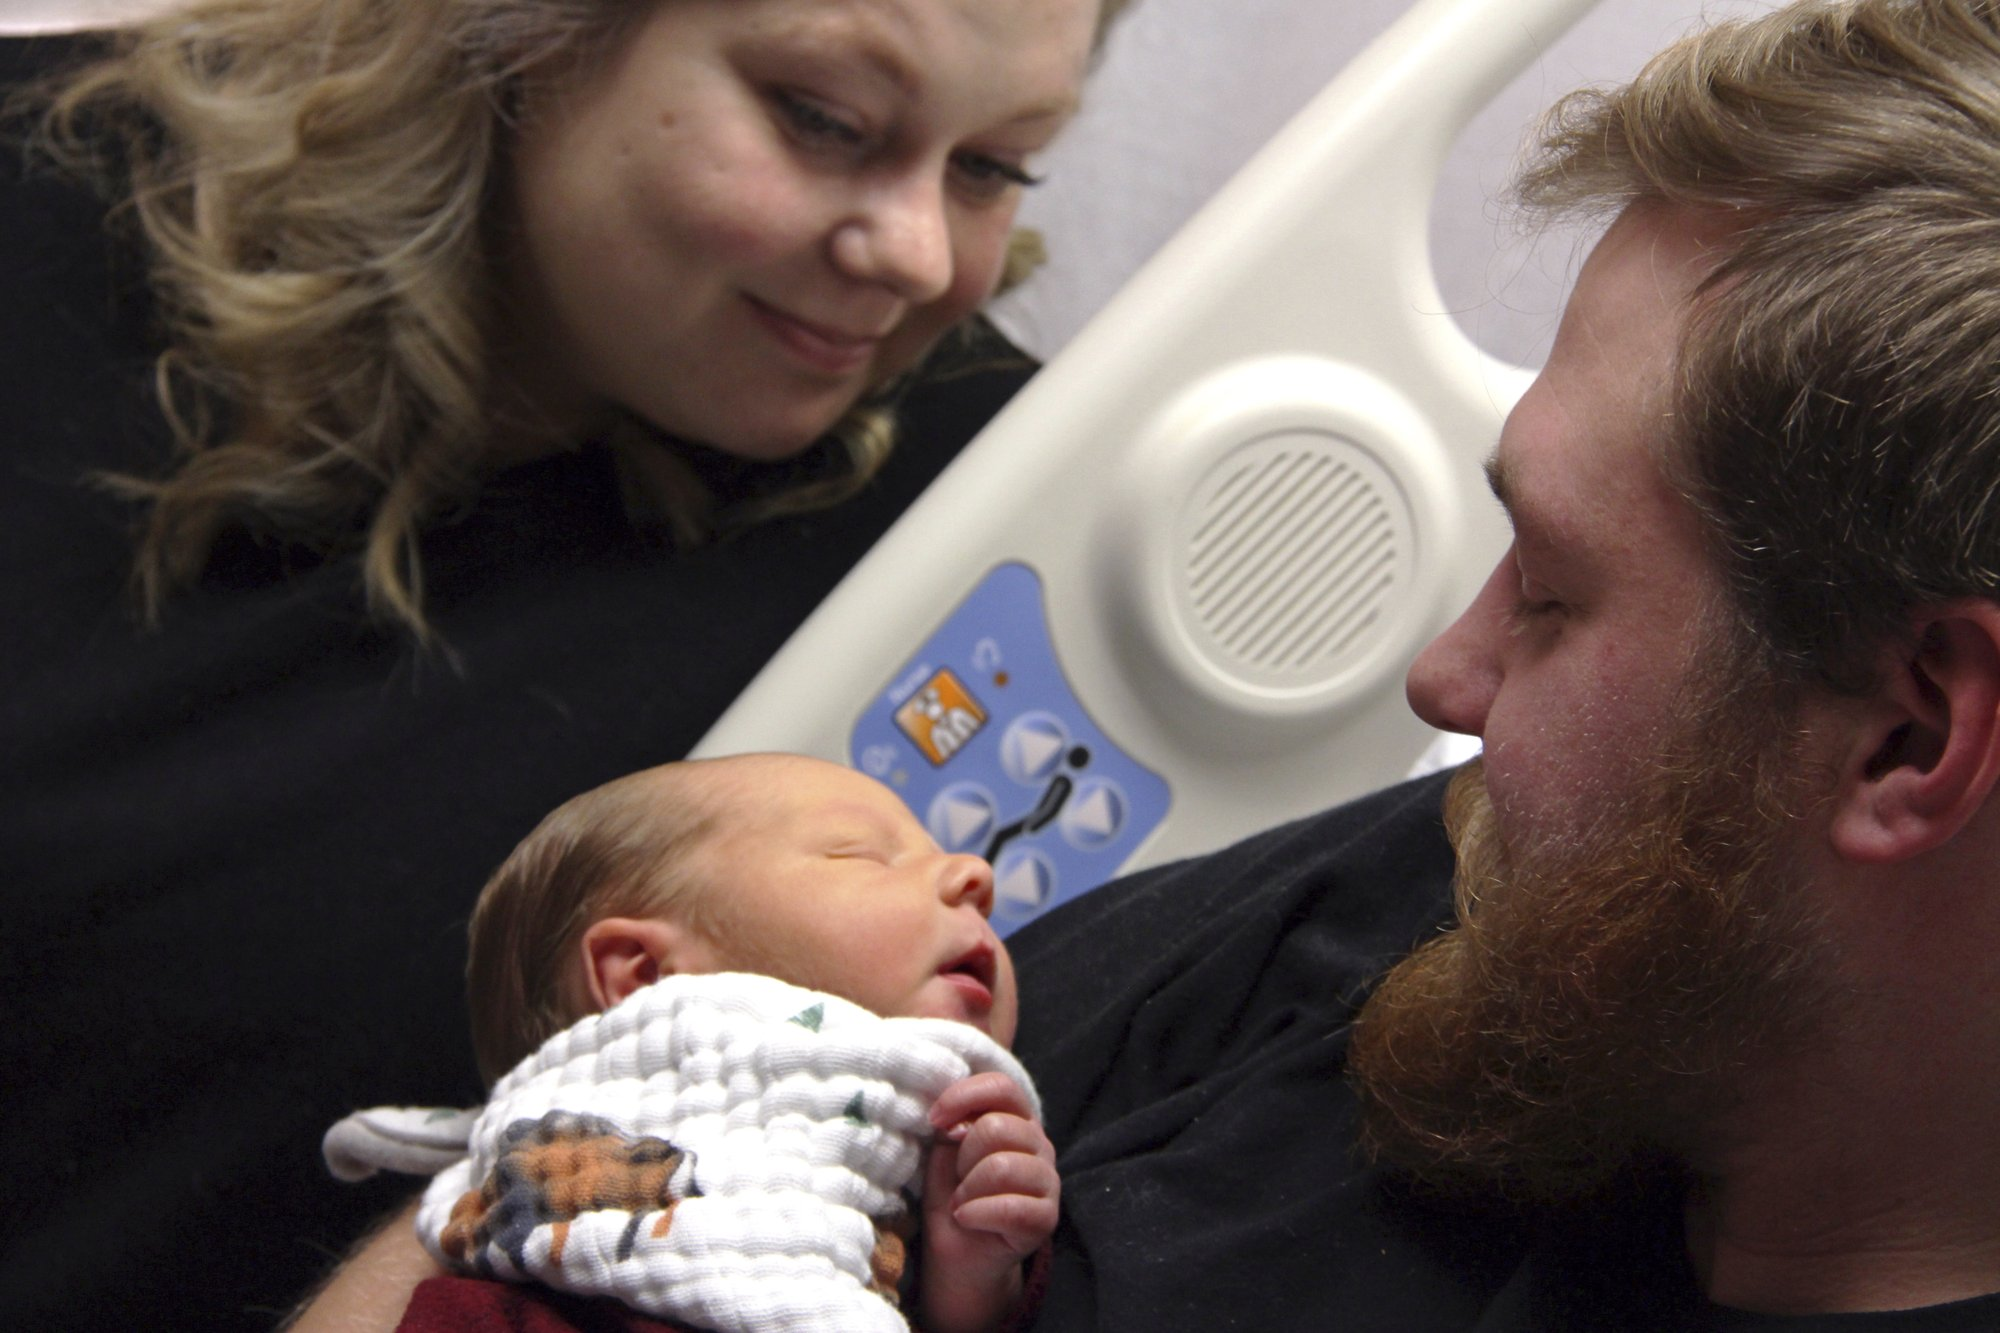 Woman saves husband who emerges from coma to see son's birth